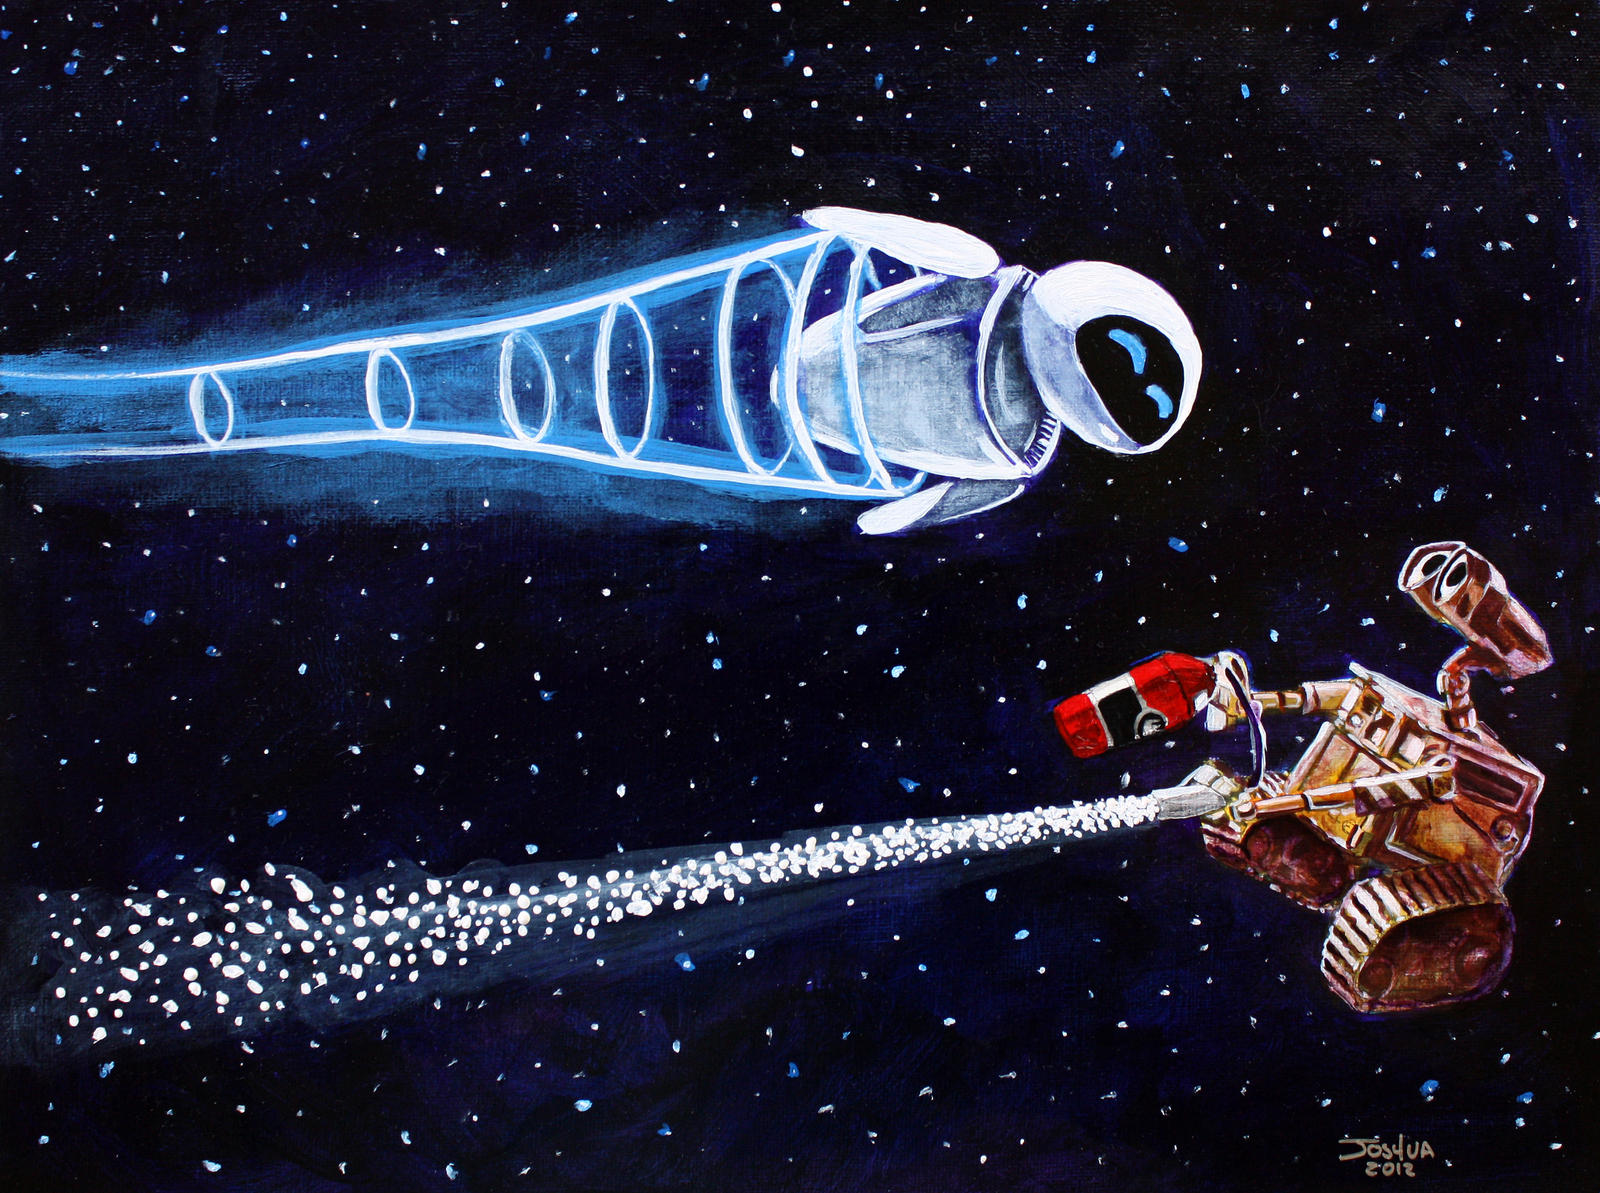 Uncategorized Wall-e And Eve wall e and eve dancing in space by tater vader on deviantart vader